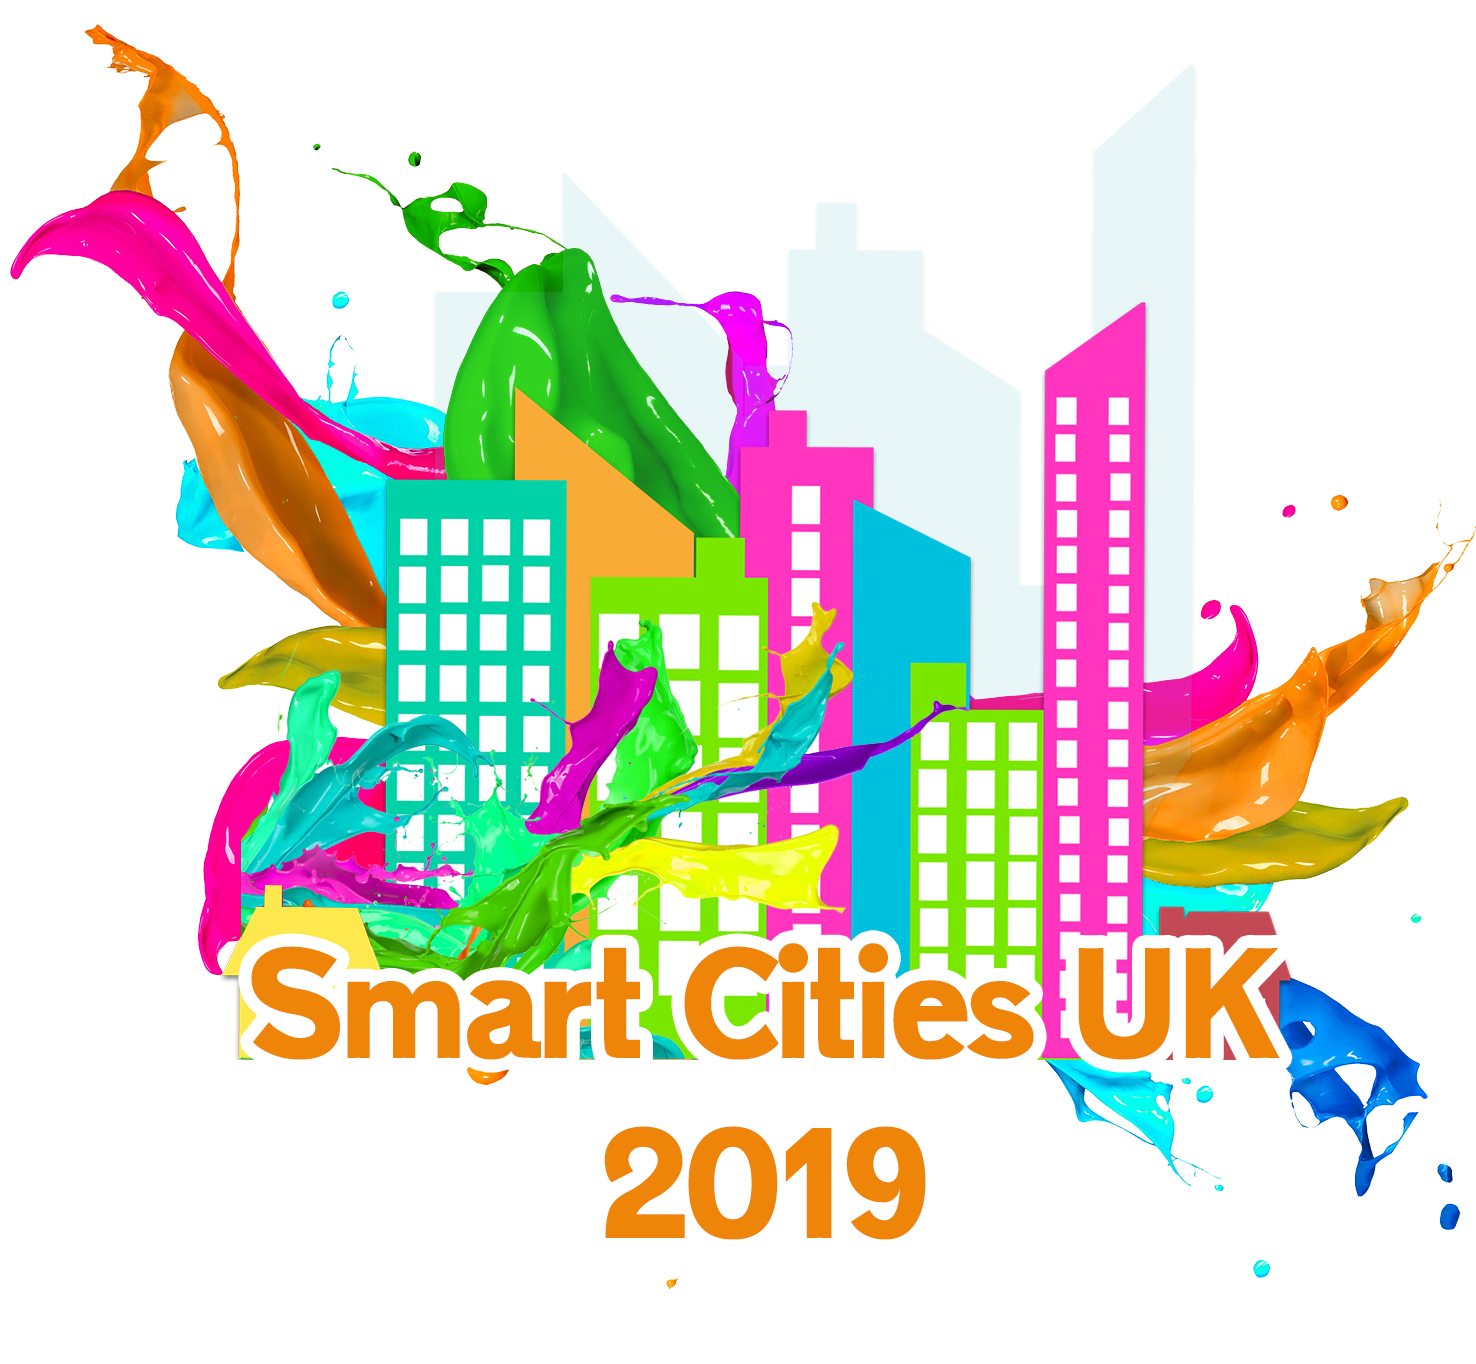 Smart Cities UK 2019